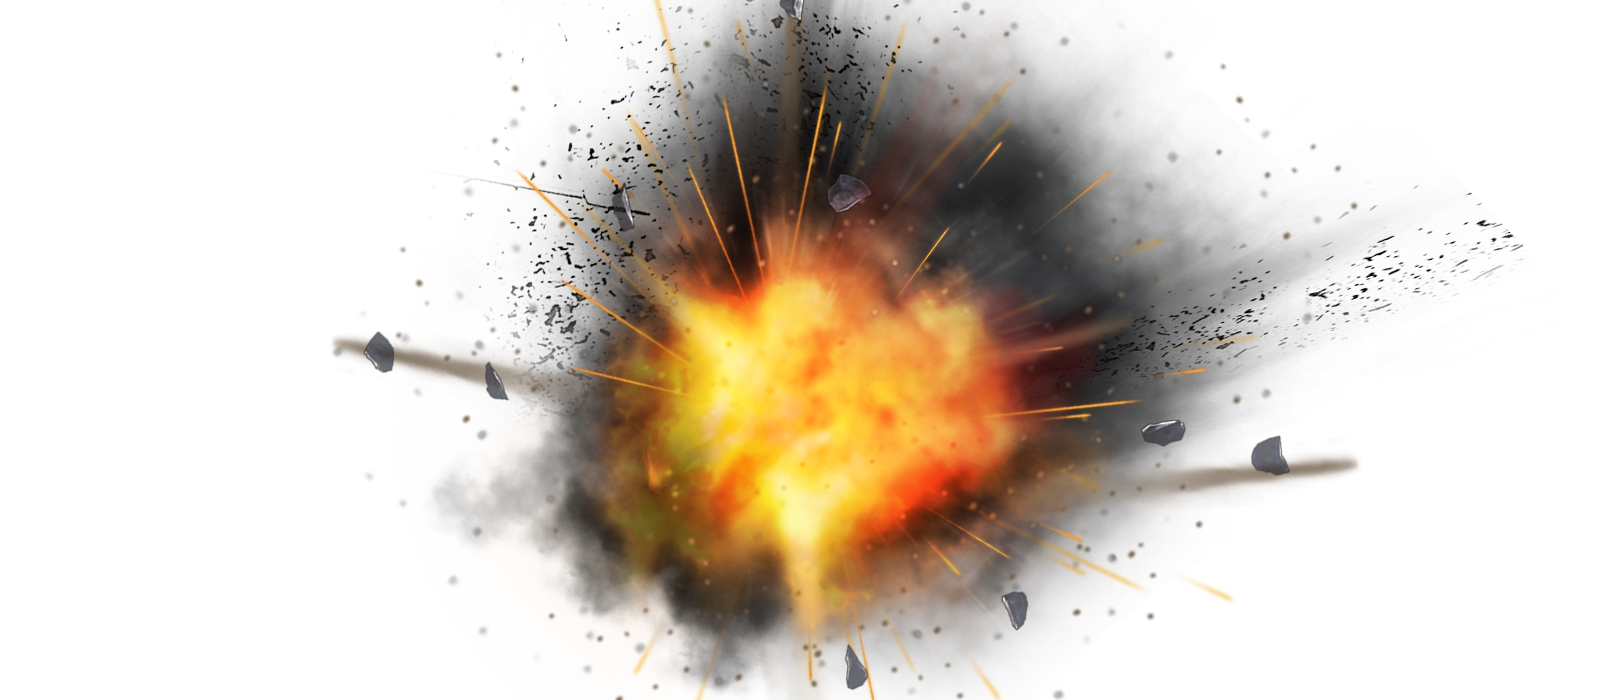 http://www.freeiconspng.com/uploads/nuclear-explosion-png-1.png